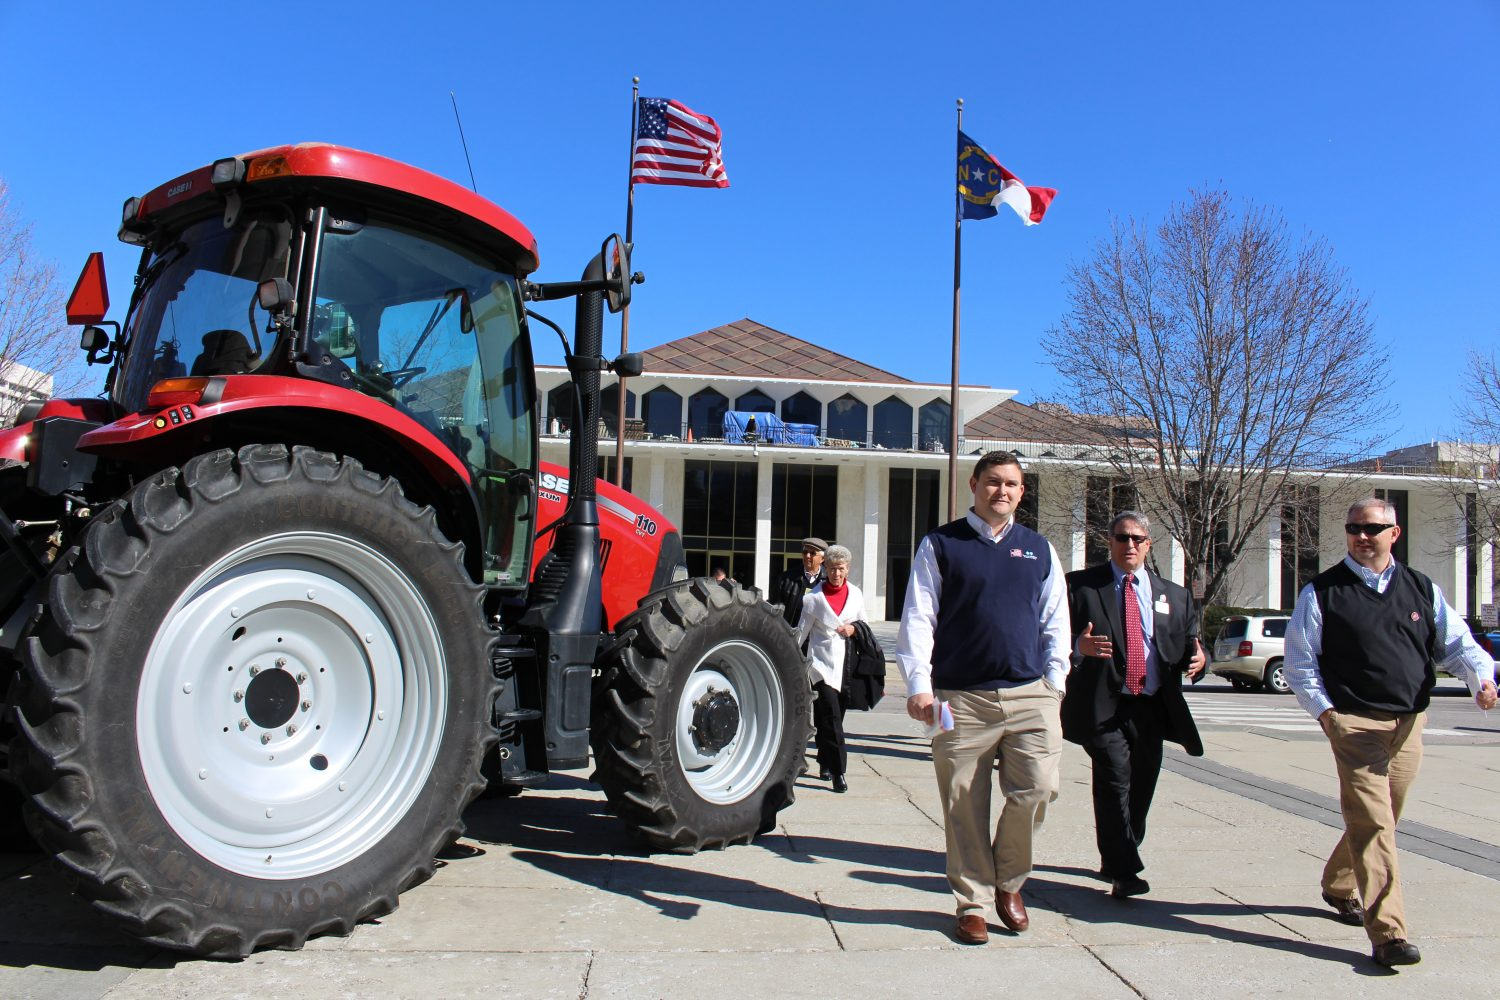 Tractor and people in front of North Carolina legislative building.